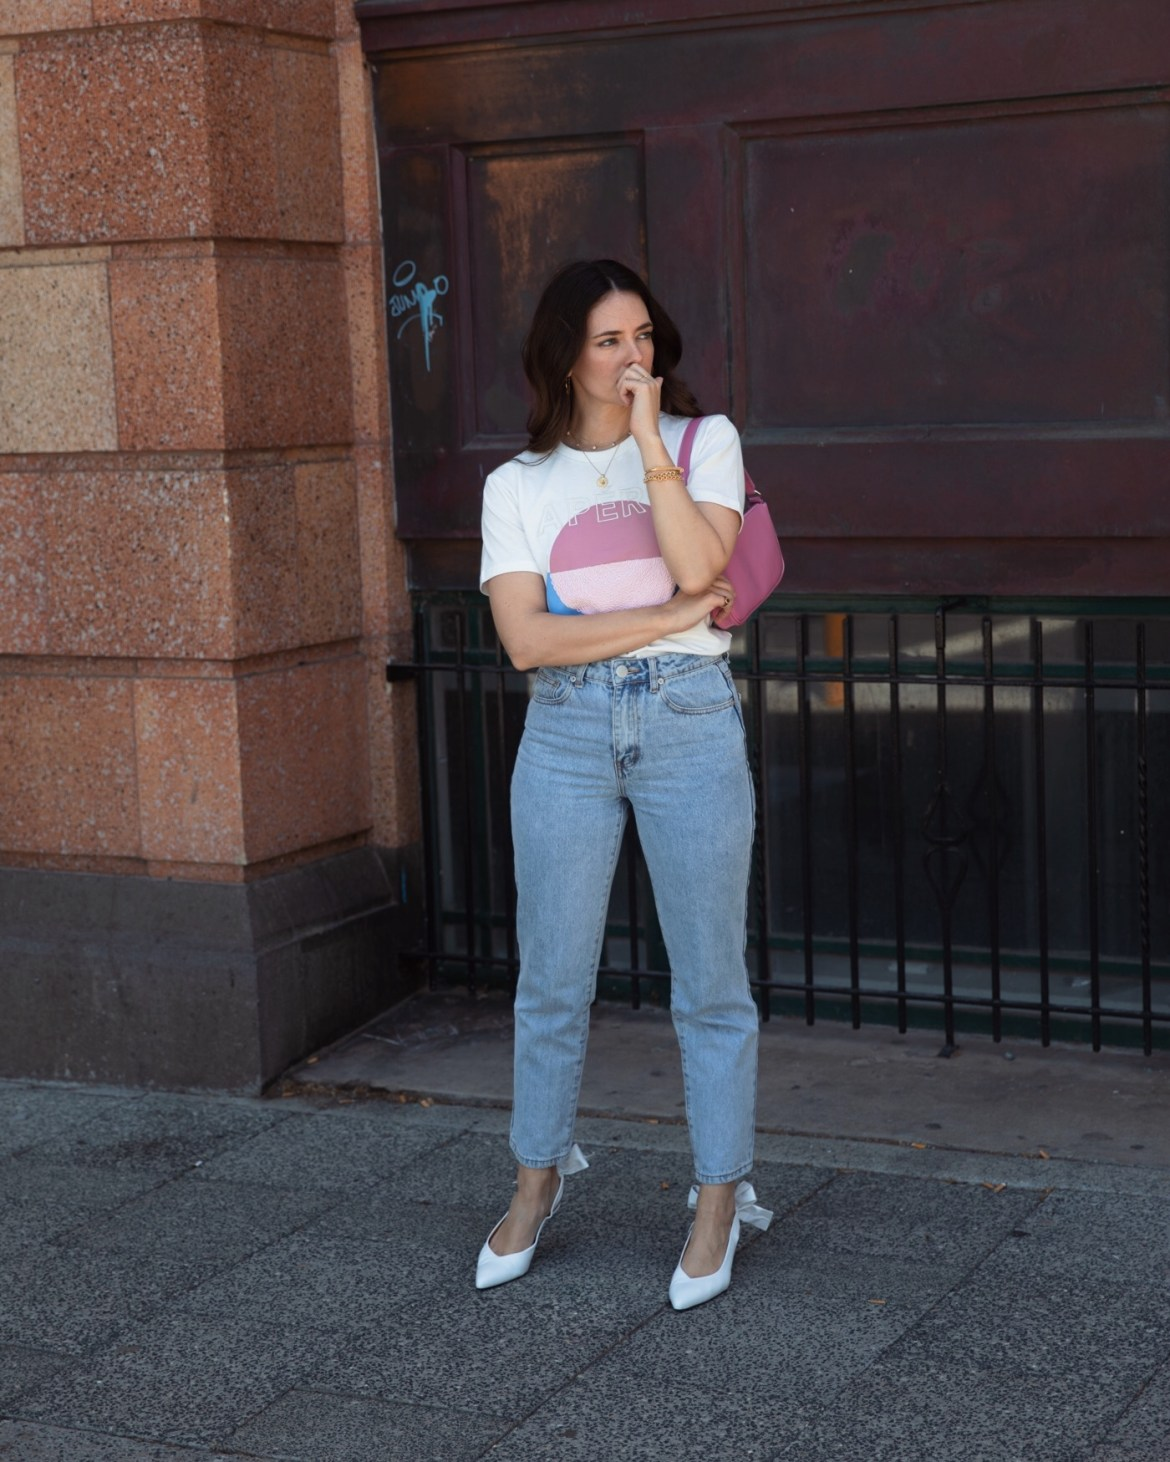 Denim jeans 90s style casual outfit idea